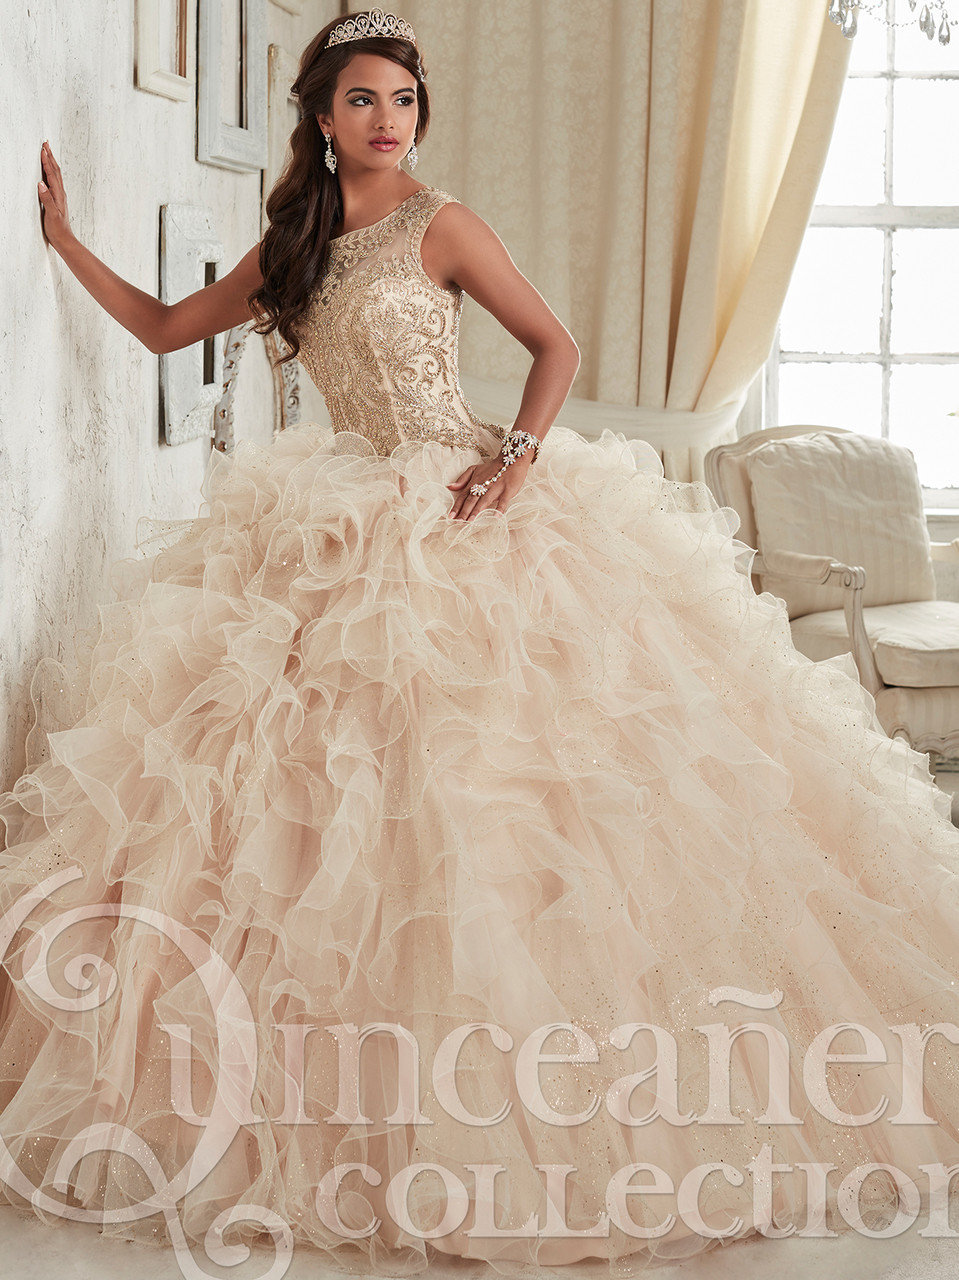 7cf08c5ee ... Sparkle Tulle Ruffled Ball Gown Tiffany Quinceanera Dress 26835. Color   Required Champagne Gold Rose Petal Gold Wine Gold Rose Pink Gold